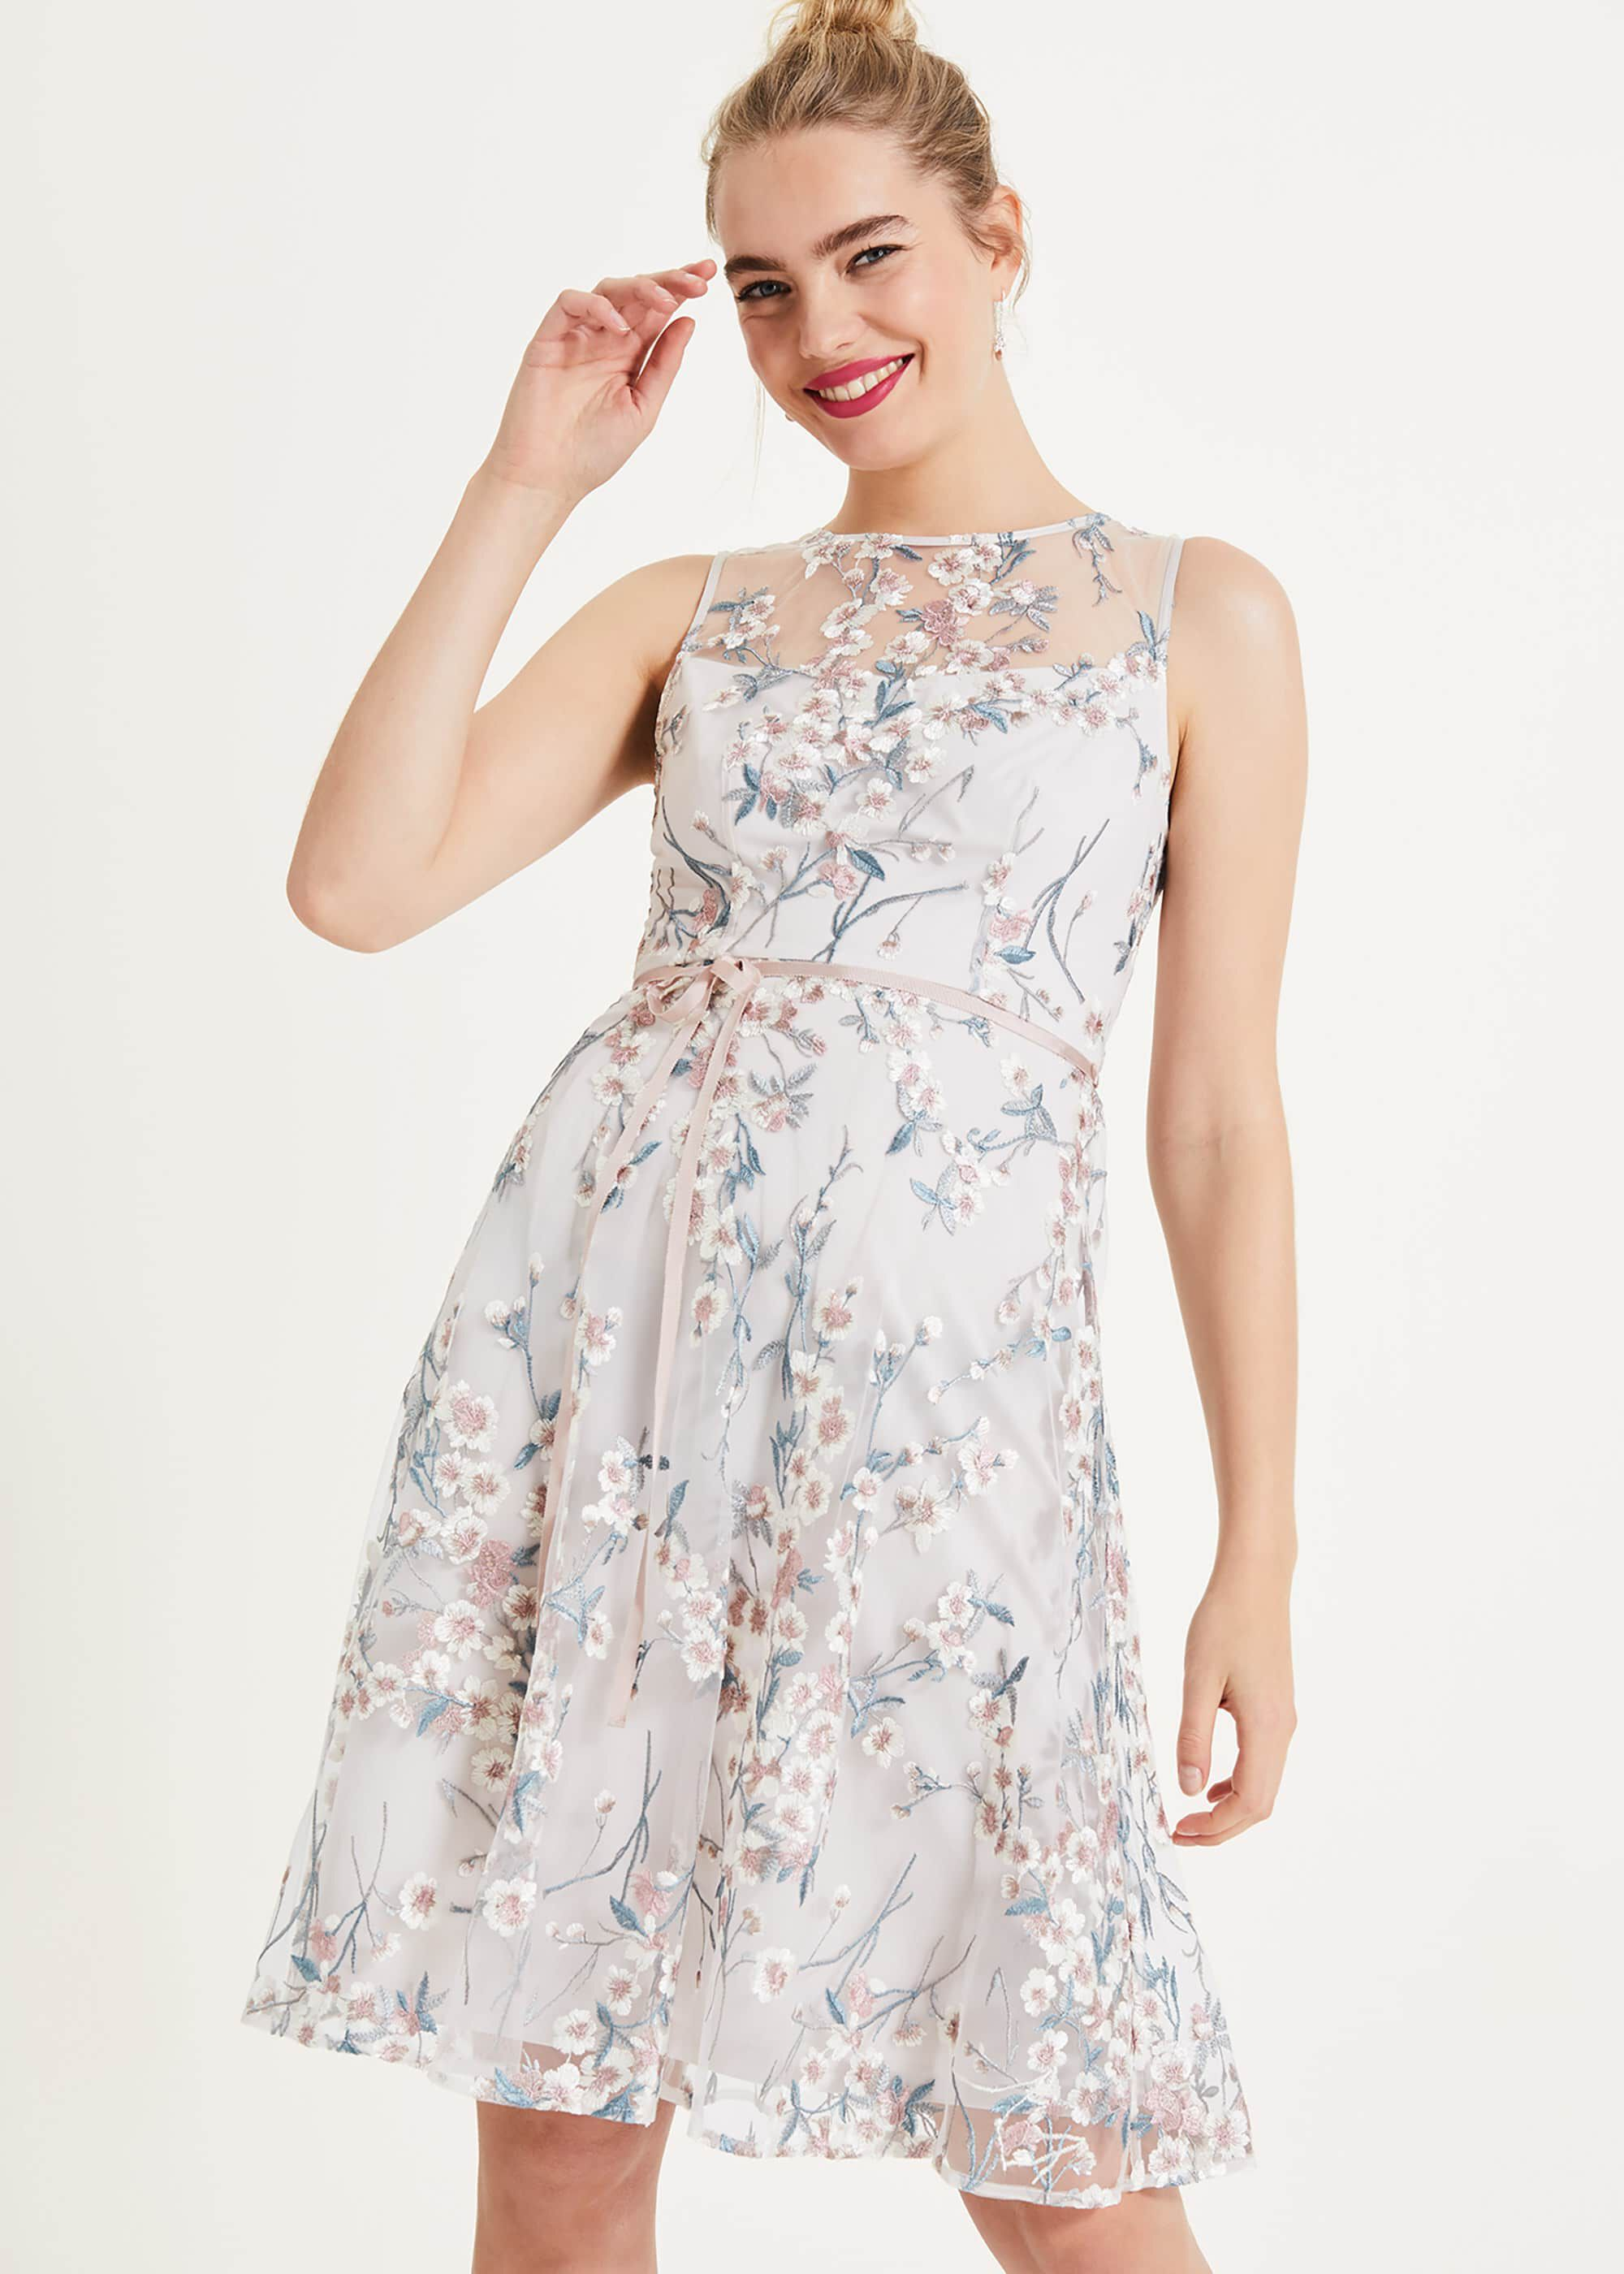 Phase Eight Maddy Embroidered Dress, Cream, Fit & Flare